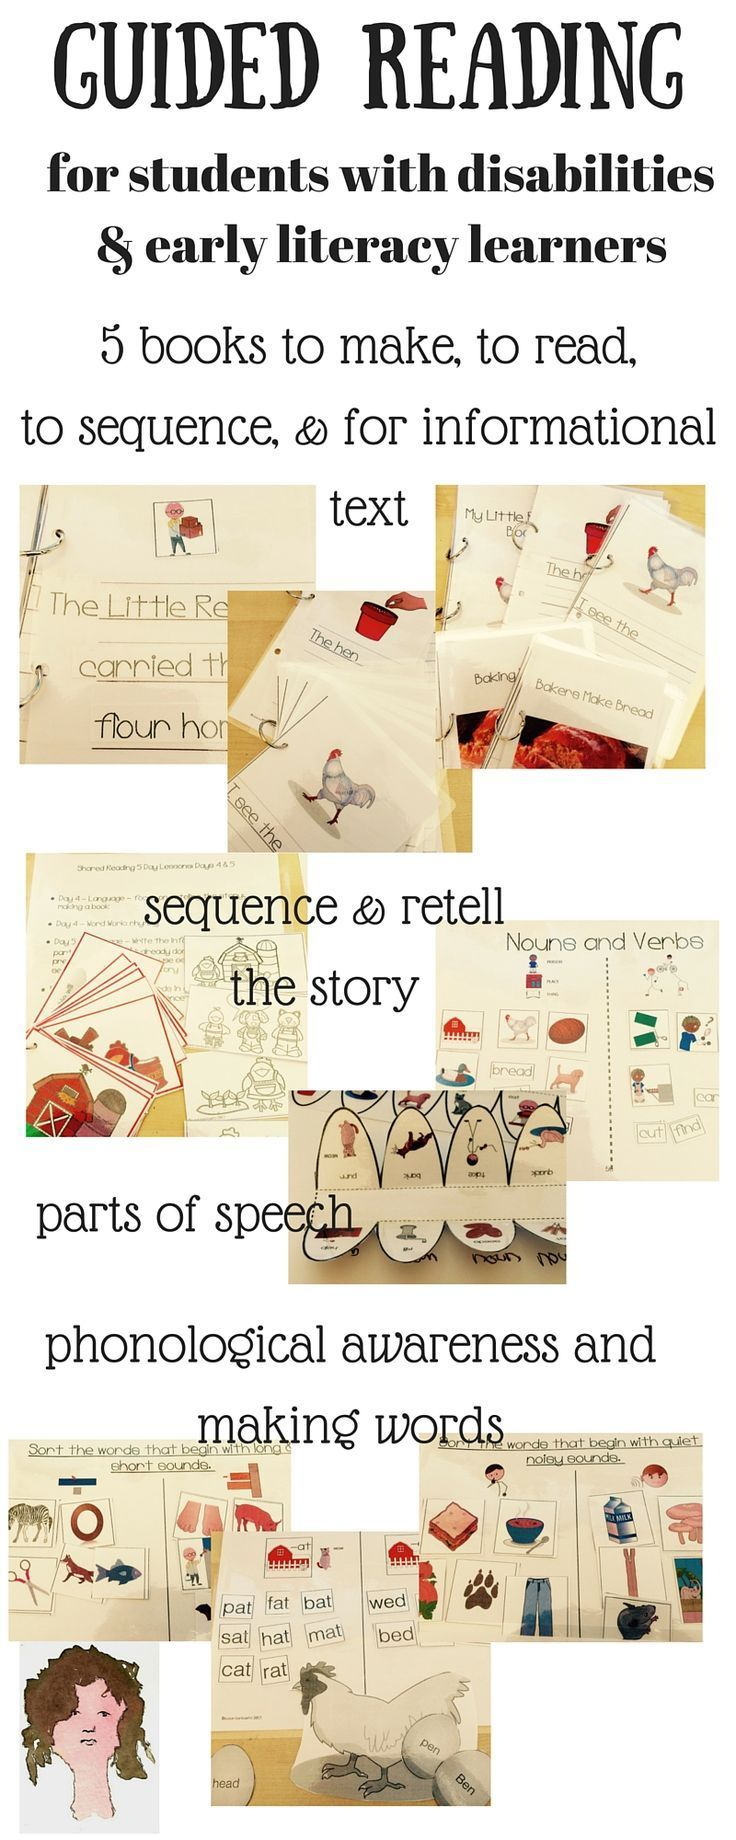 Incorporate shared reading and literacy instruction into your group of special education students with the materials for The Little Red Hen, covering vocabulary, sequencing, comprehension, retelling, grammar, reading & writing & word work, and more.This has been written for students with special needs, but is also appropriate for general ed and differentiated learning.What's included?Discussion of shared reading Hierarchy of comprehension questionsCCSS coveredI Can posters for CCSS/